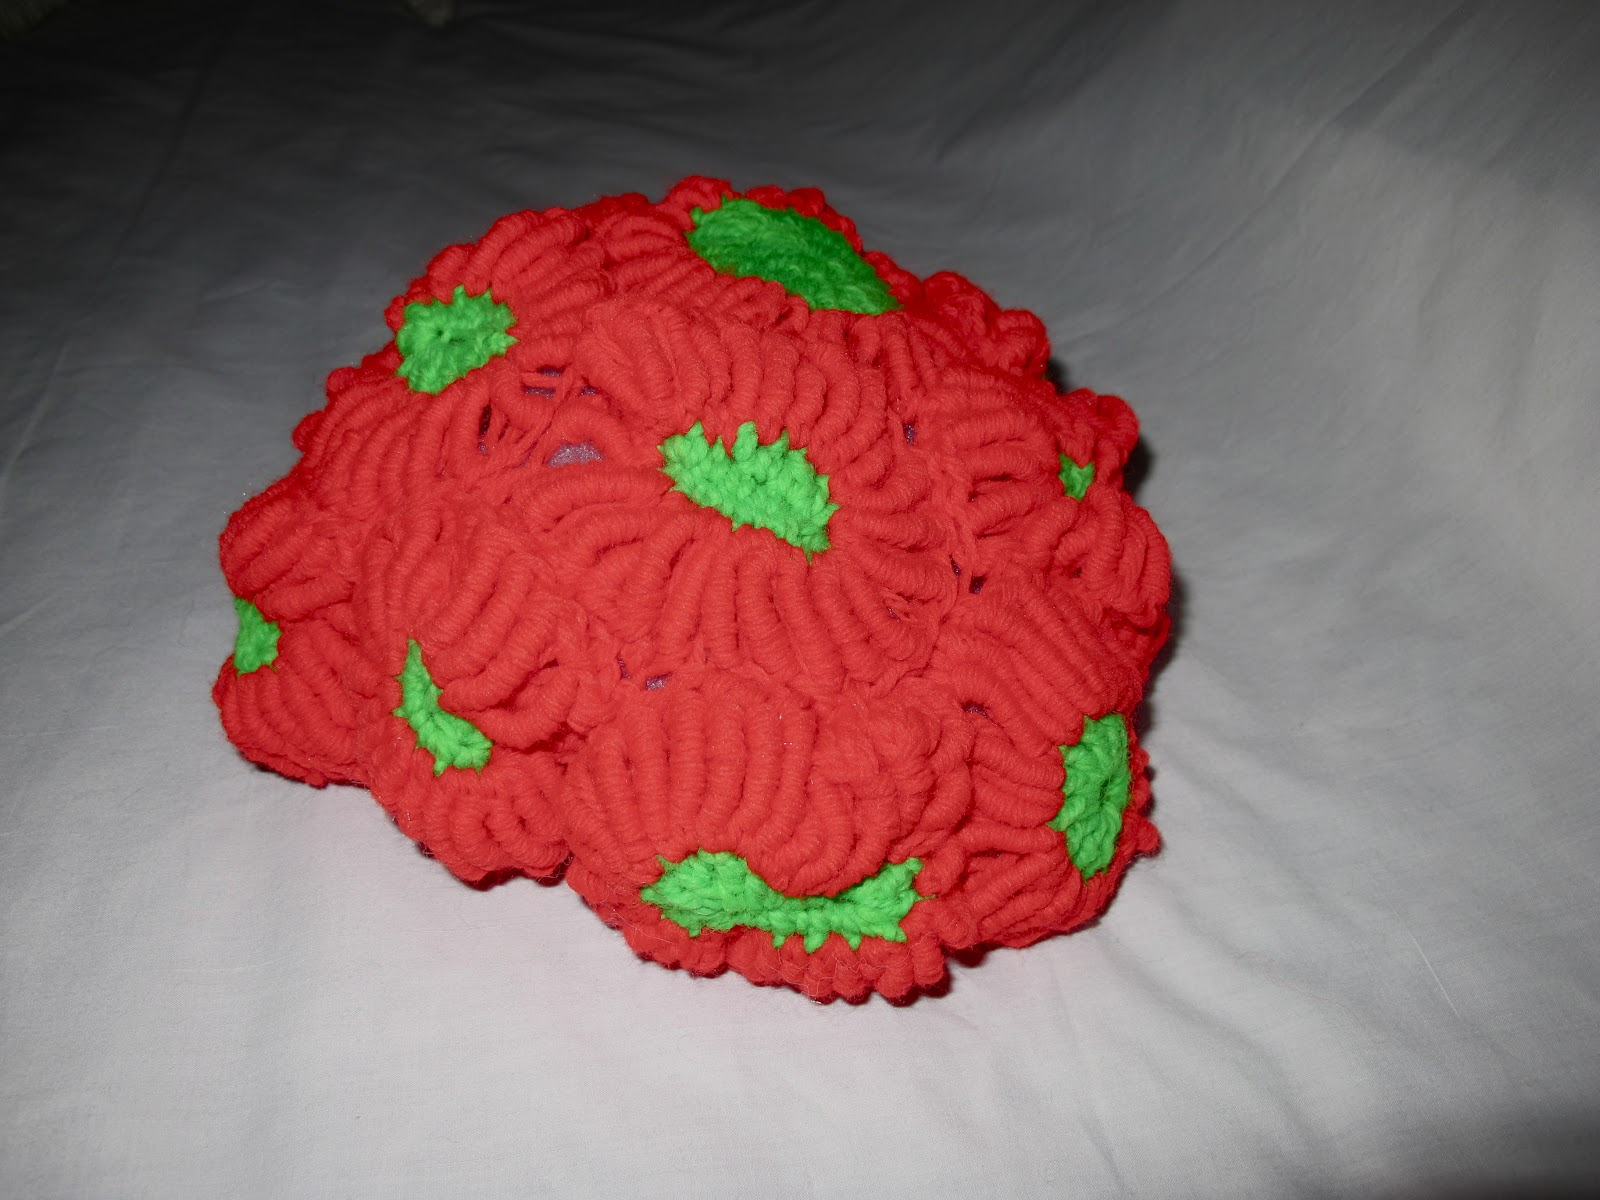 The Maine Reef Crochet War Coral And Pattern